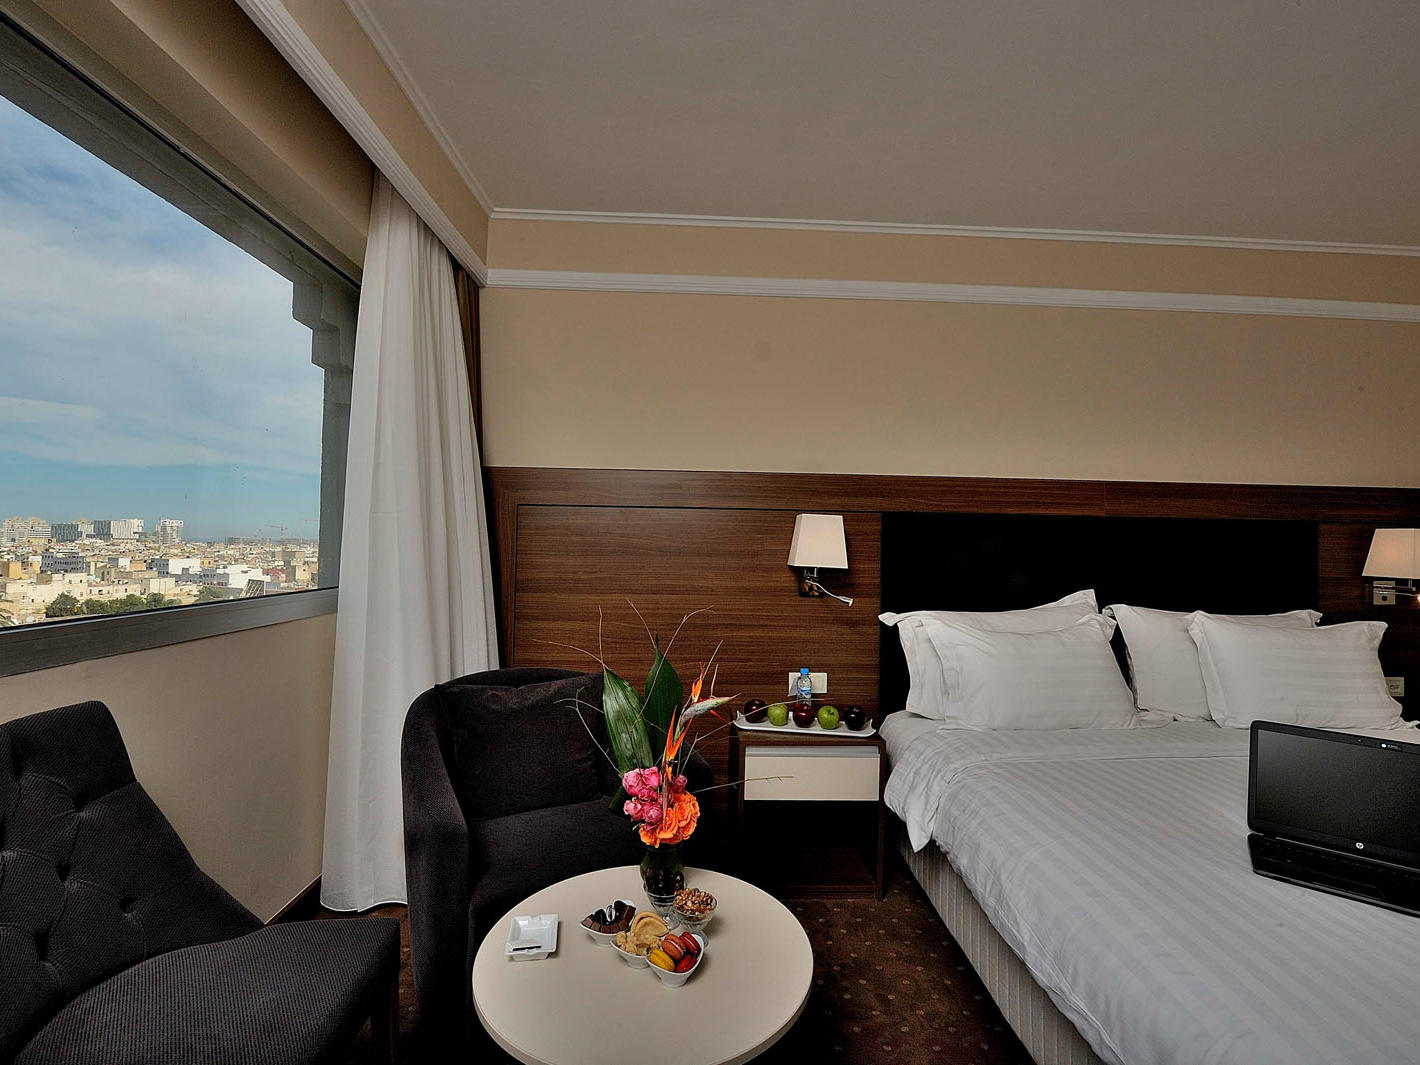 Deluxe room at Kenzi Hotels Group